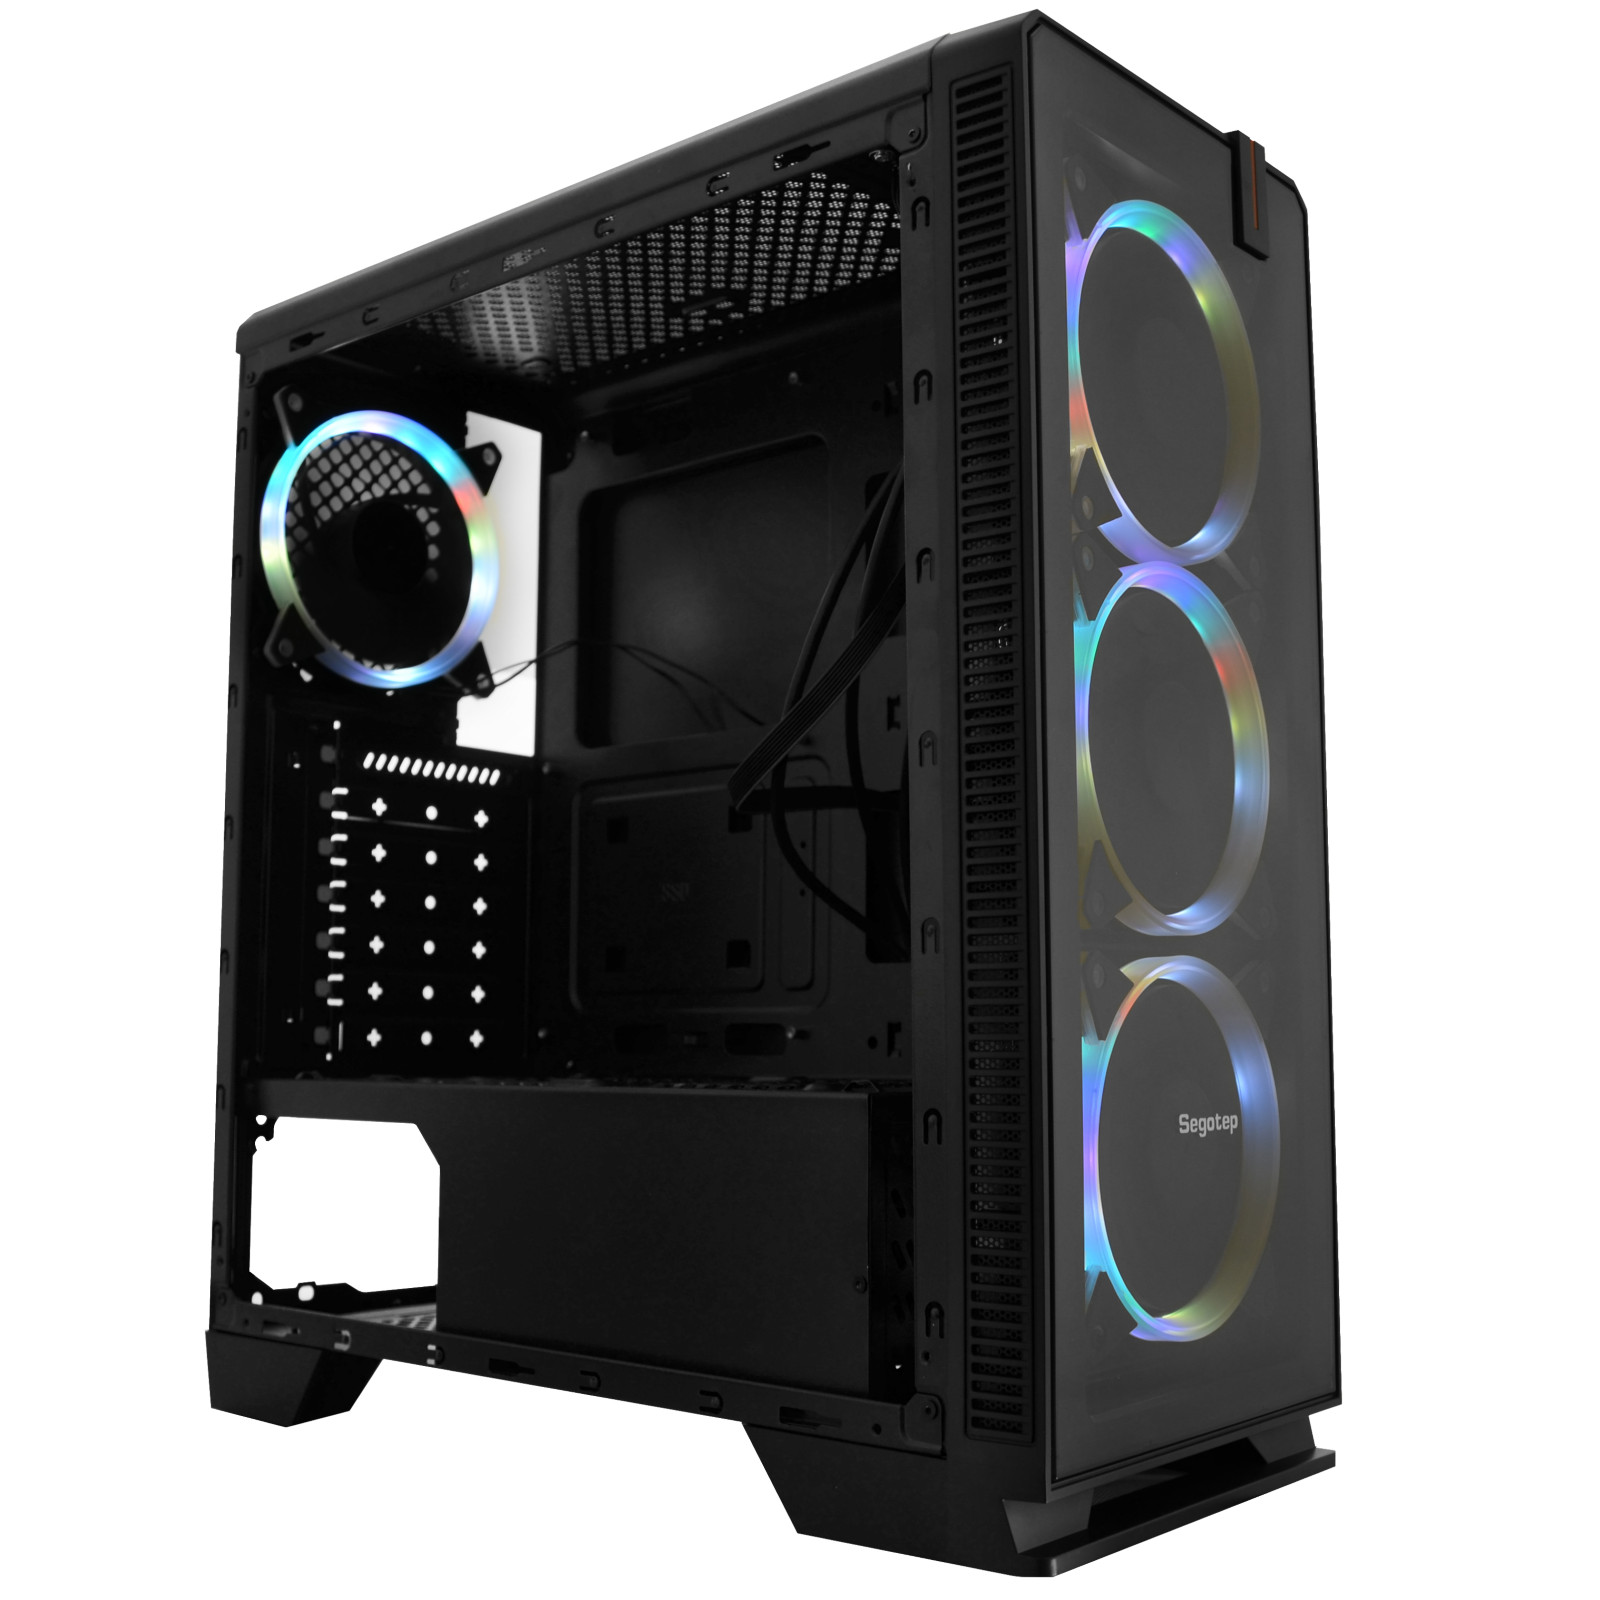 Buy The Segotep Halo 7 Plus Mid Tower Case With 4 X 120mm Rgb Fans Star Wiring Box Nz For Atx Online